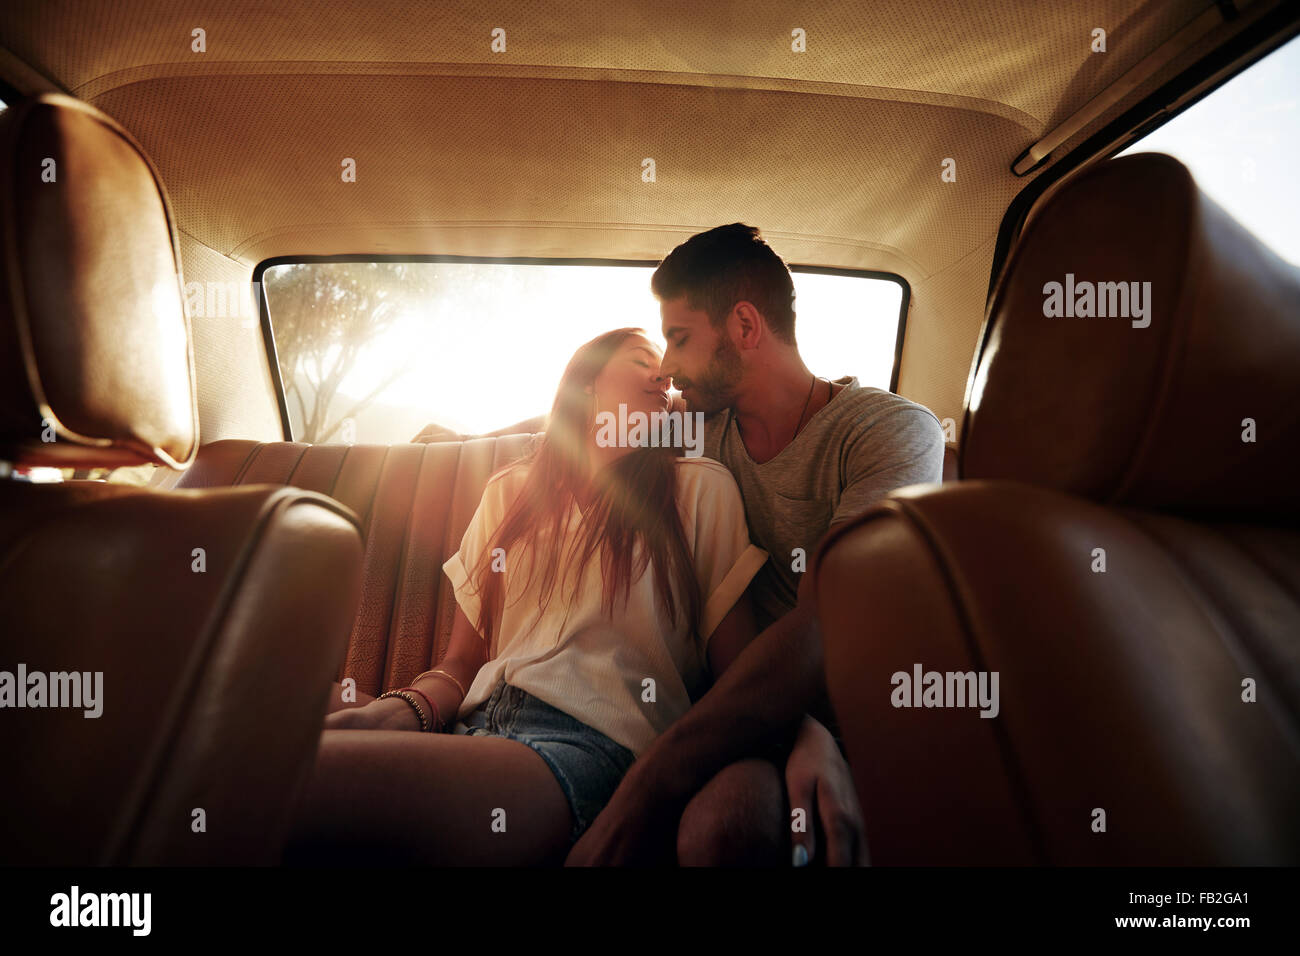 Romantic young couple in back seat of car. Loving couple on road trip. - Stock Image